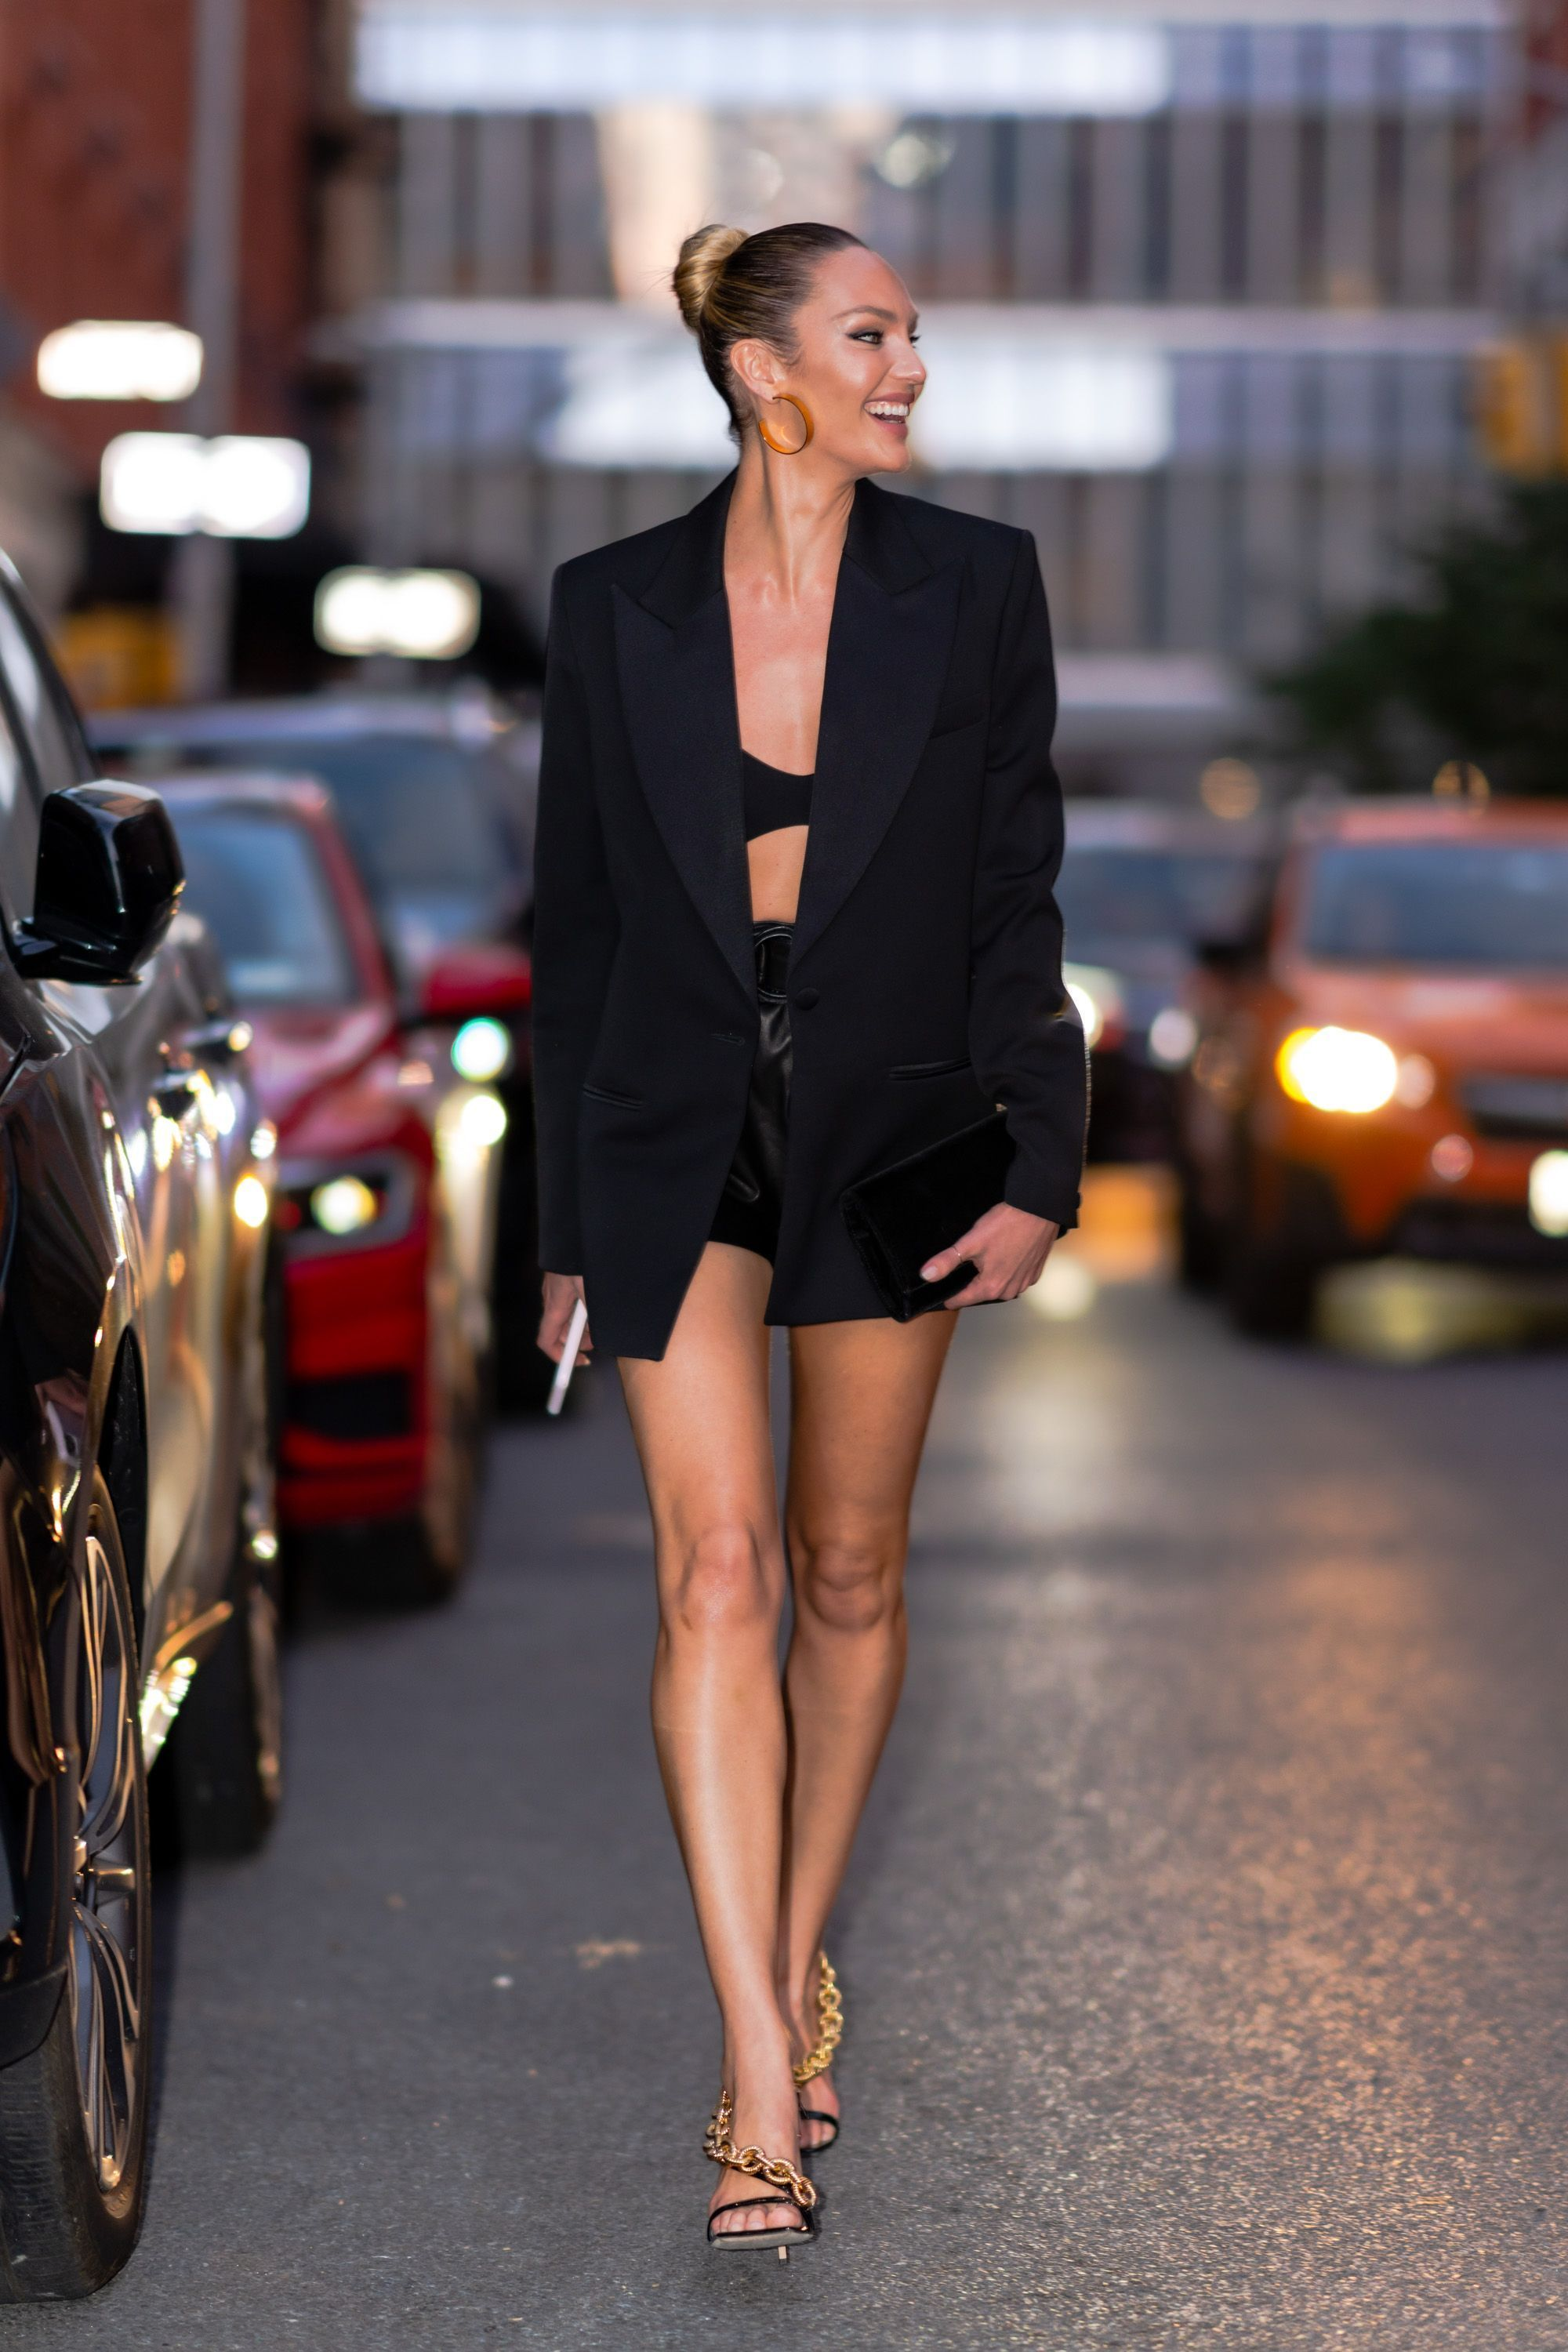 Secrets of the stylish: Why Candice Swanepoel's black blazer has enduring appeal